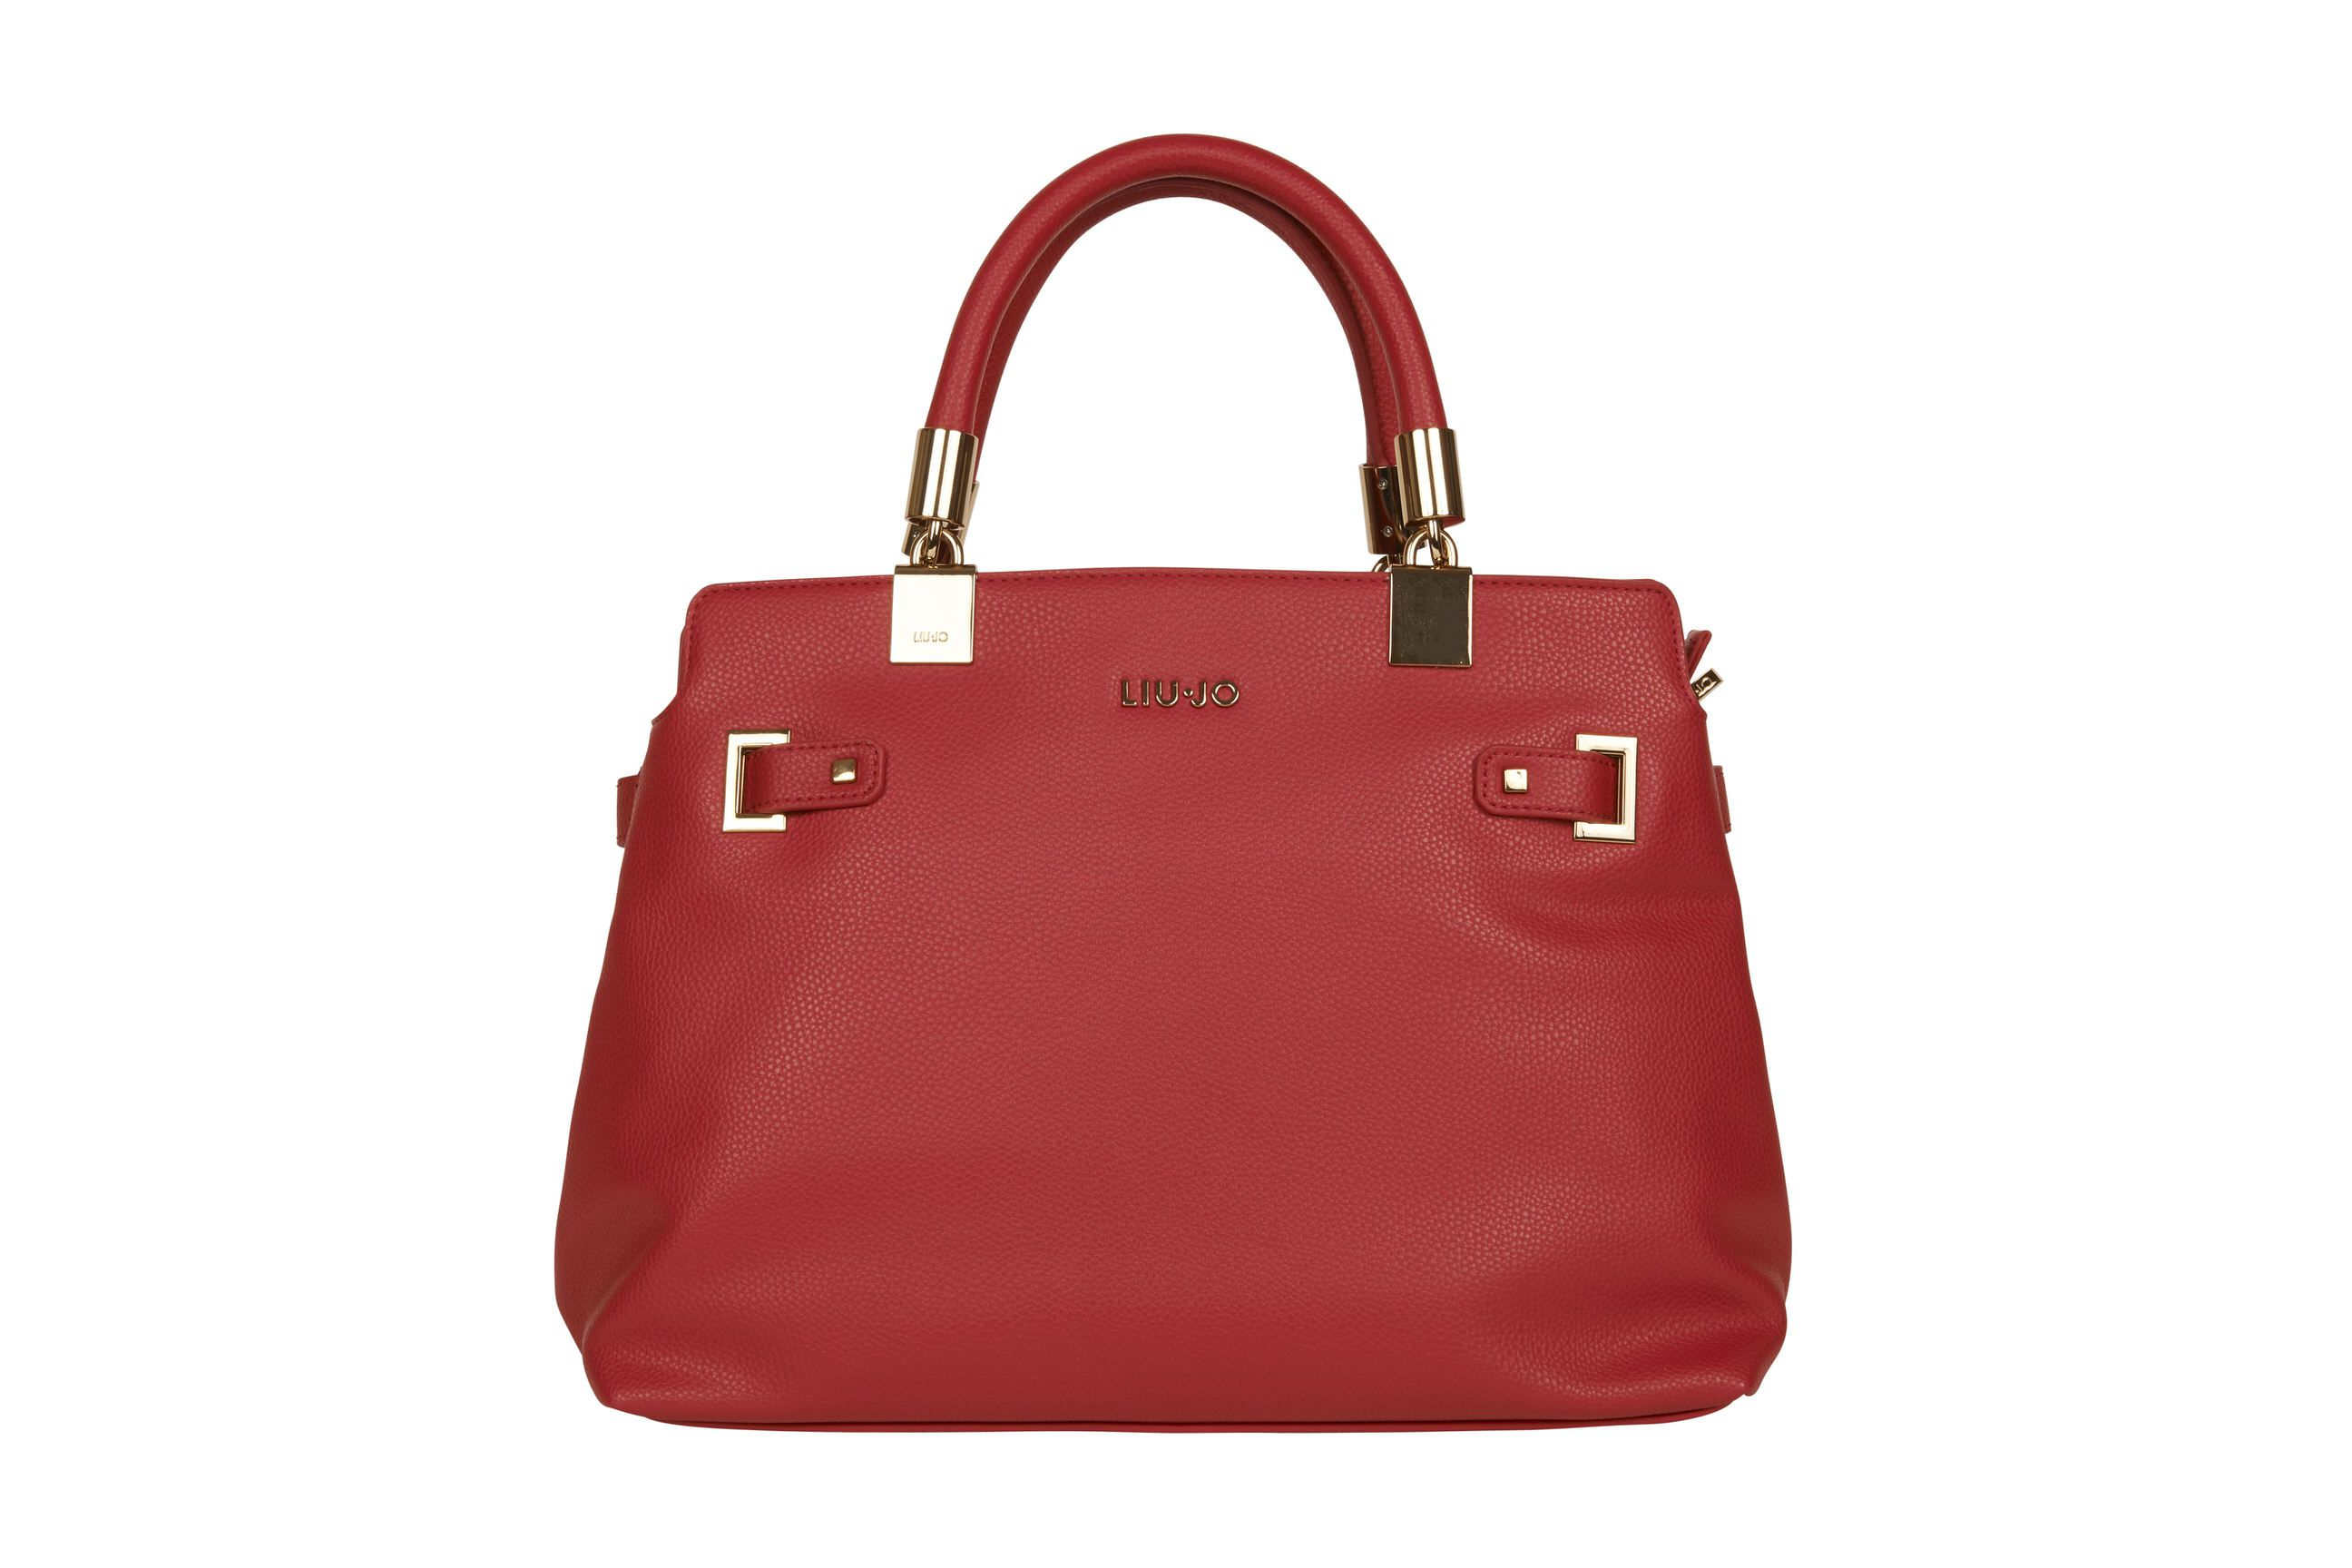 LIU JO BORSA SHOPPER MARS RED 81655